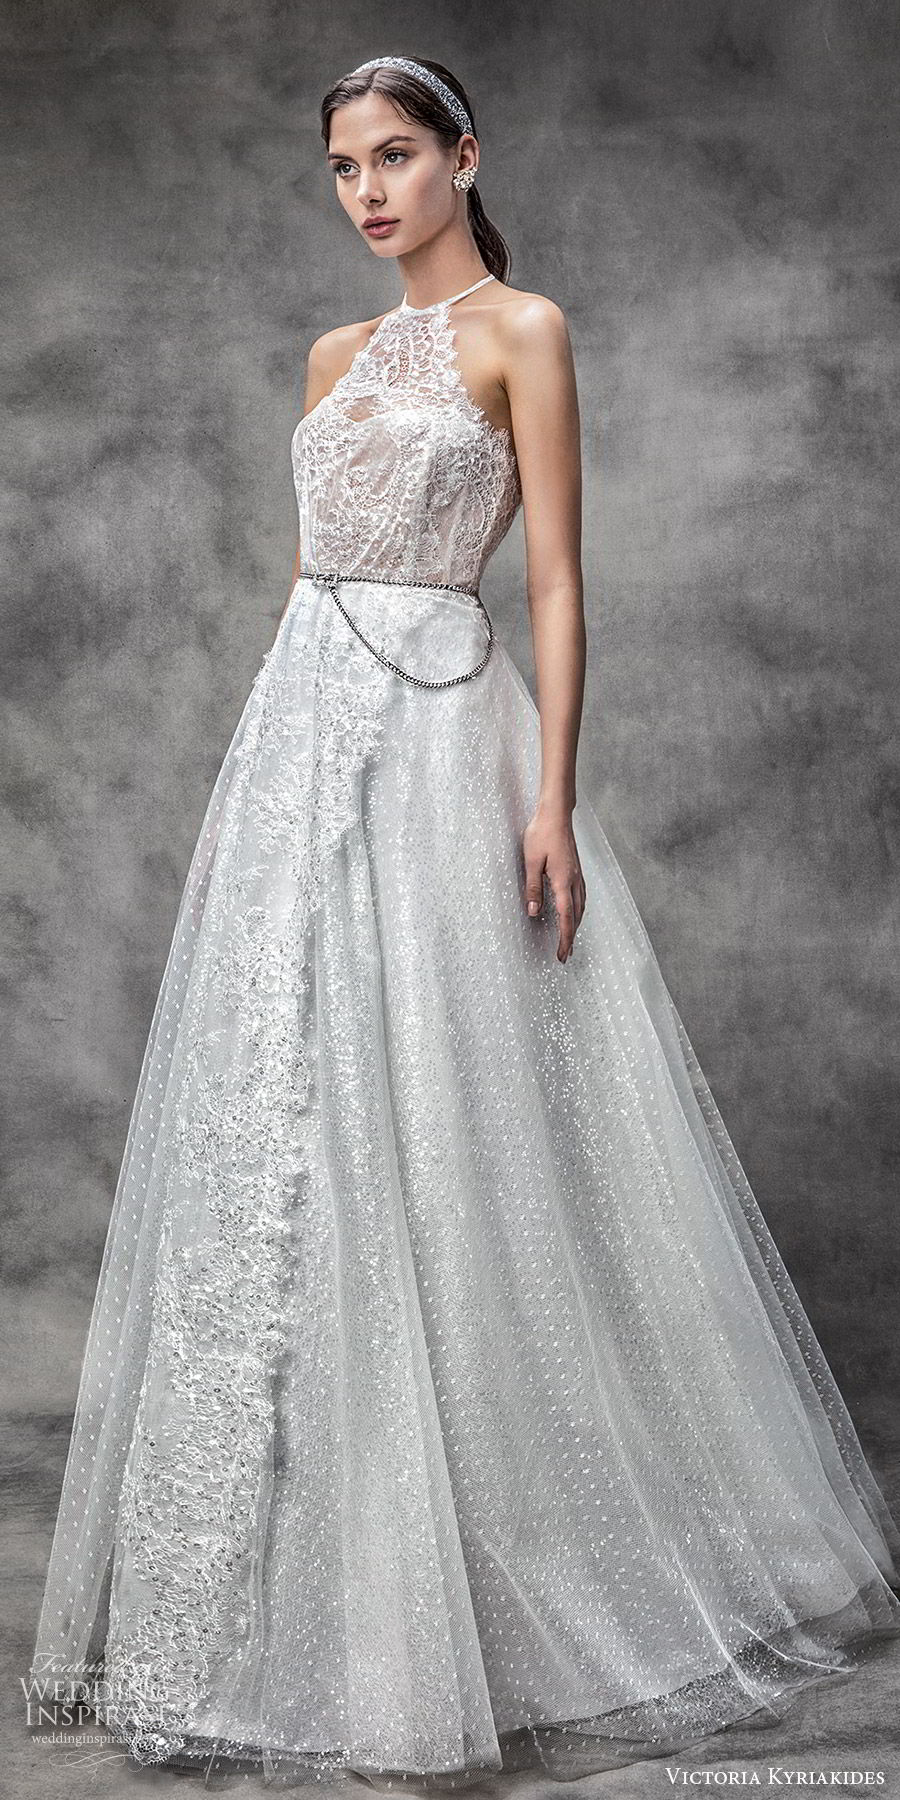 victoria kyriakides spring 2020 bridal sleeveless halter neck sheer bodice sweetheart fully embellished a line ball gown wedding dress (3) glitzy romantic mv